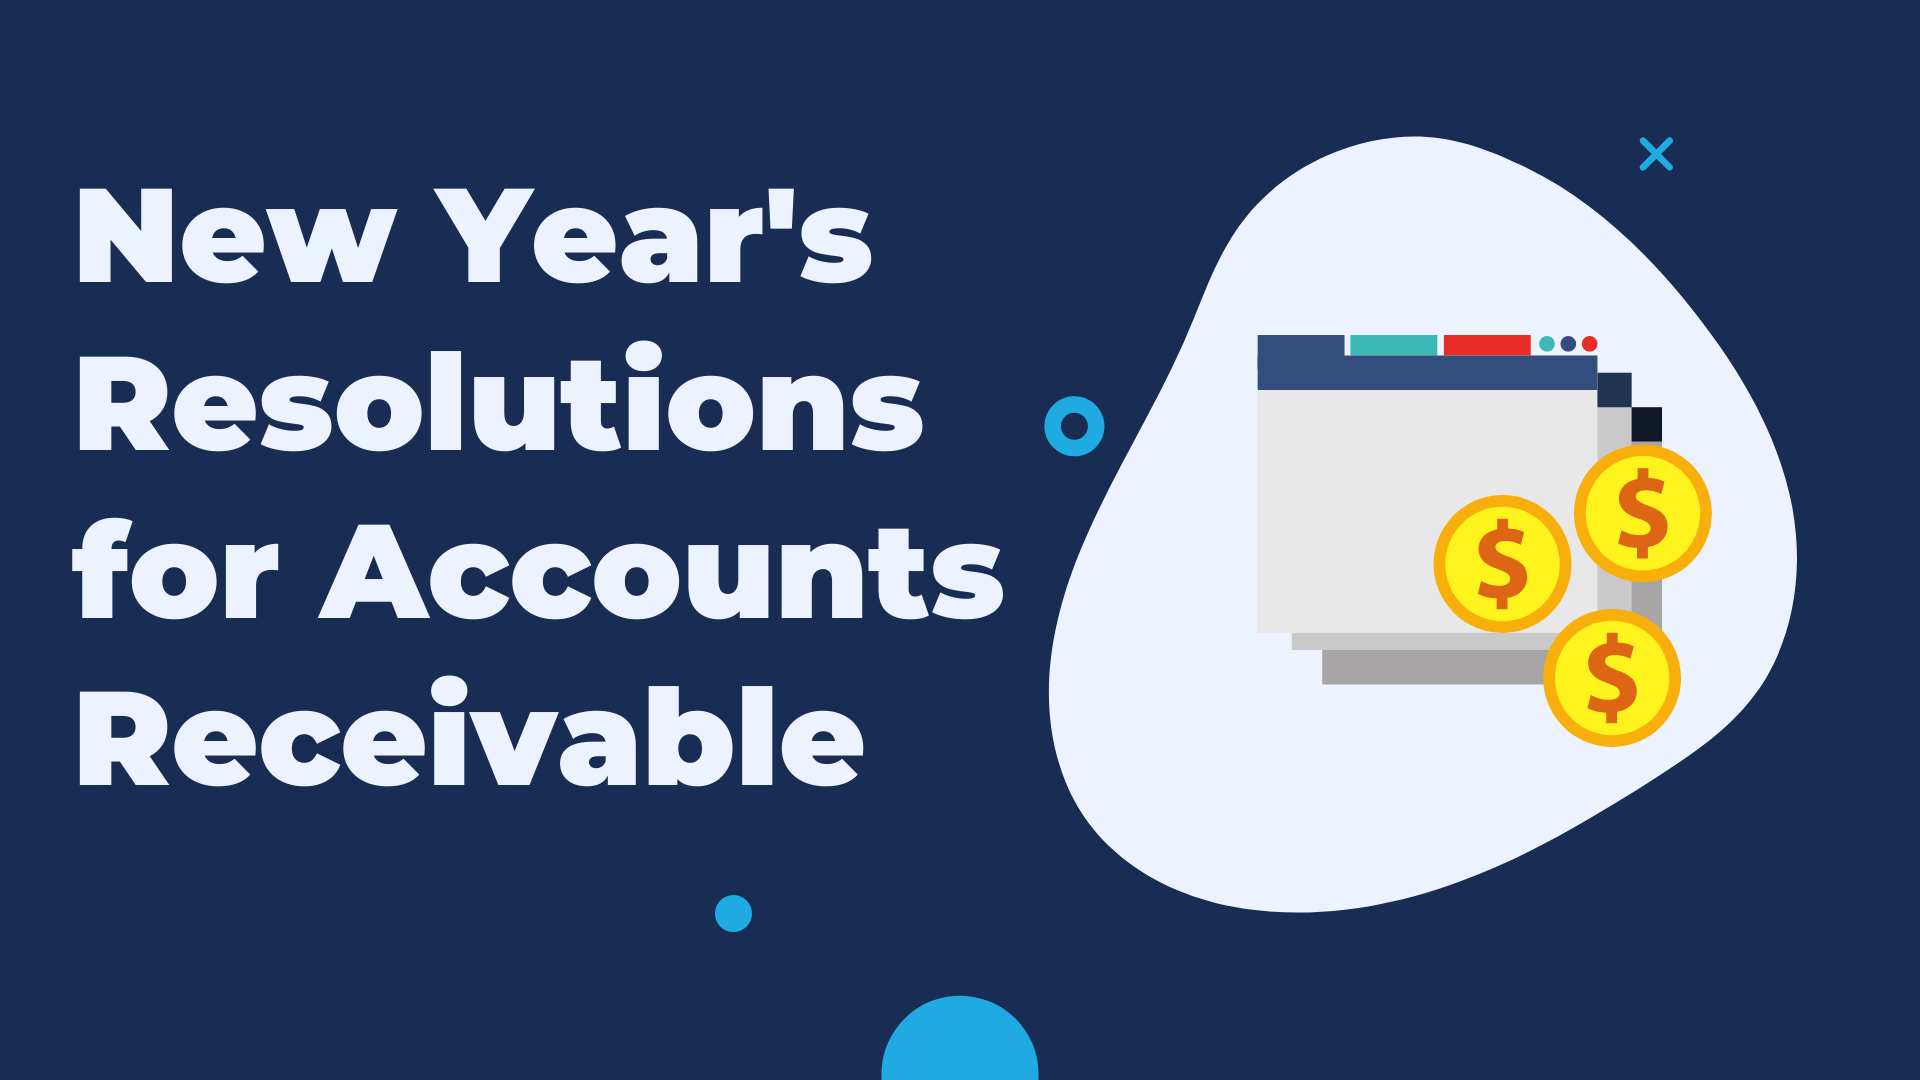 6 New Years Resolutions for Accounts Receivable (A/R)